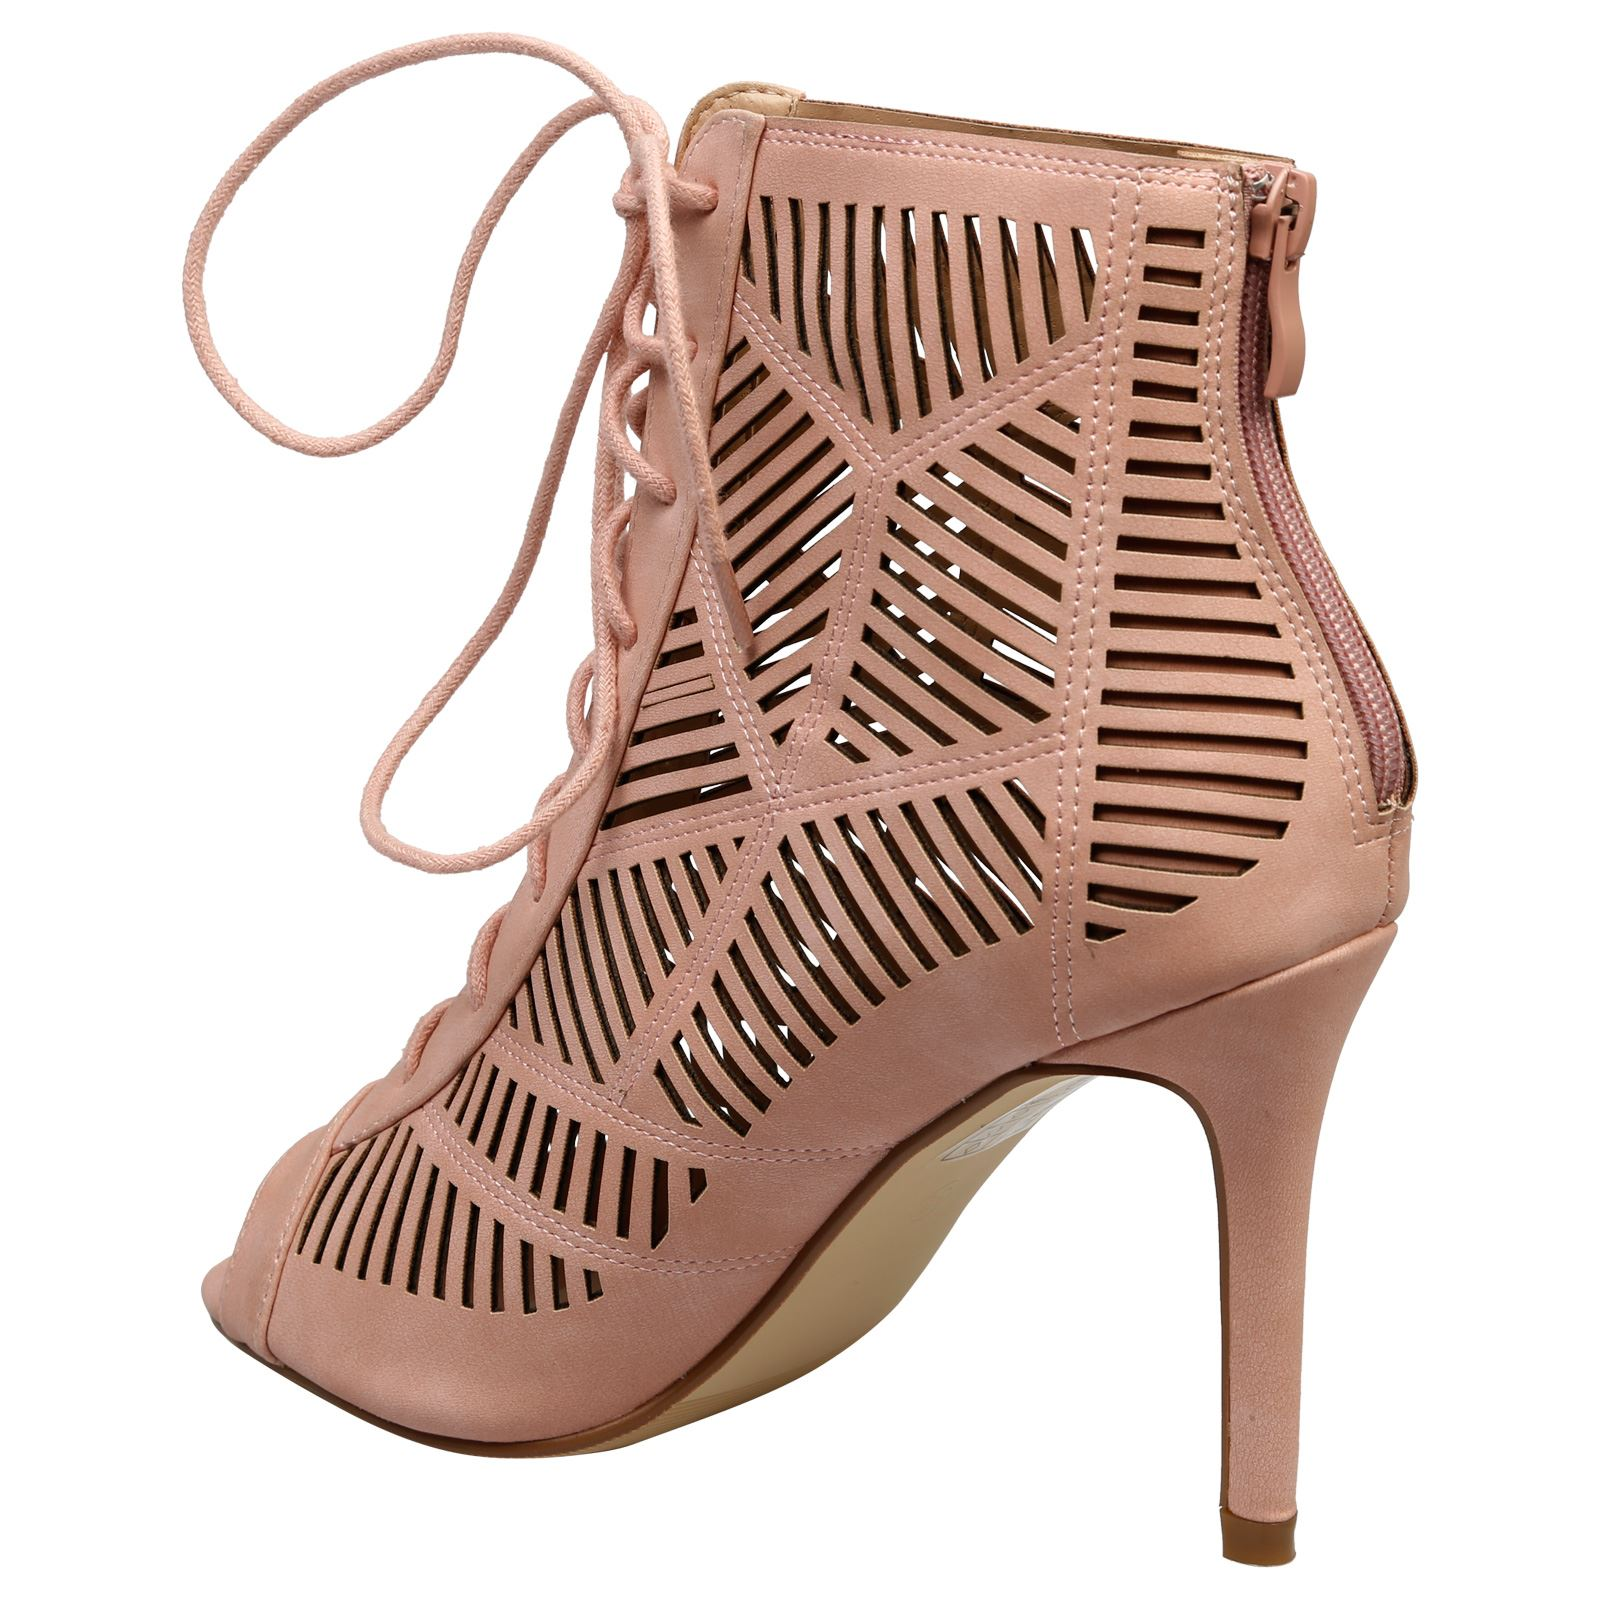 Anais-Womens-High-Heels-Stilettos-Lace-Up-Peep-Toe-Ankle-Boots-Ladies-Shoes-Size thumbnail 13